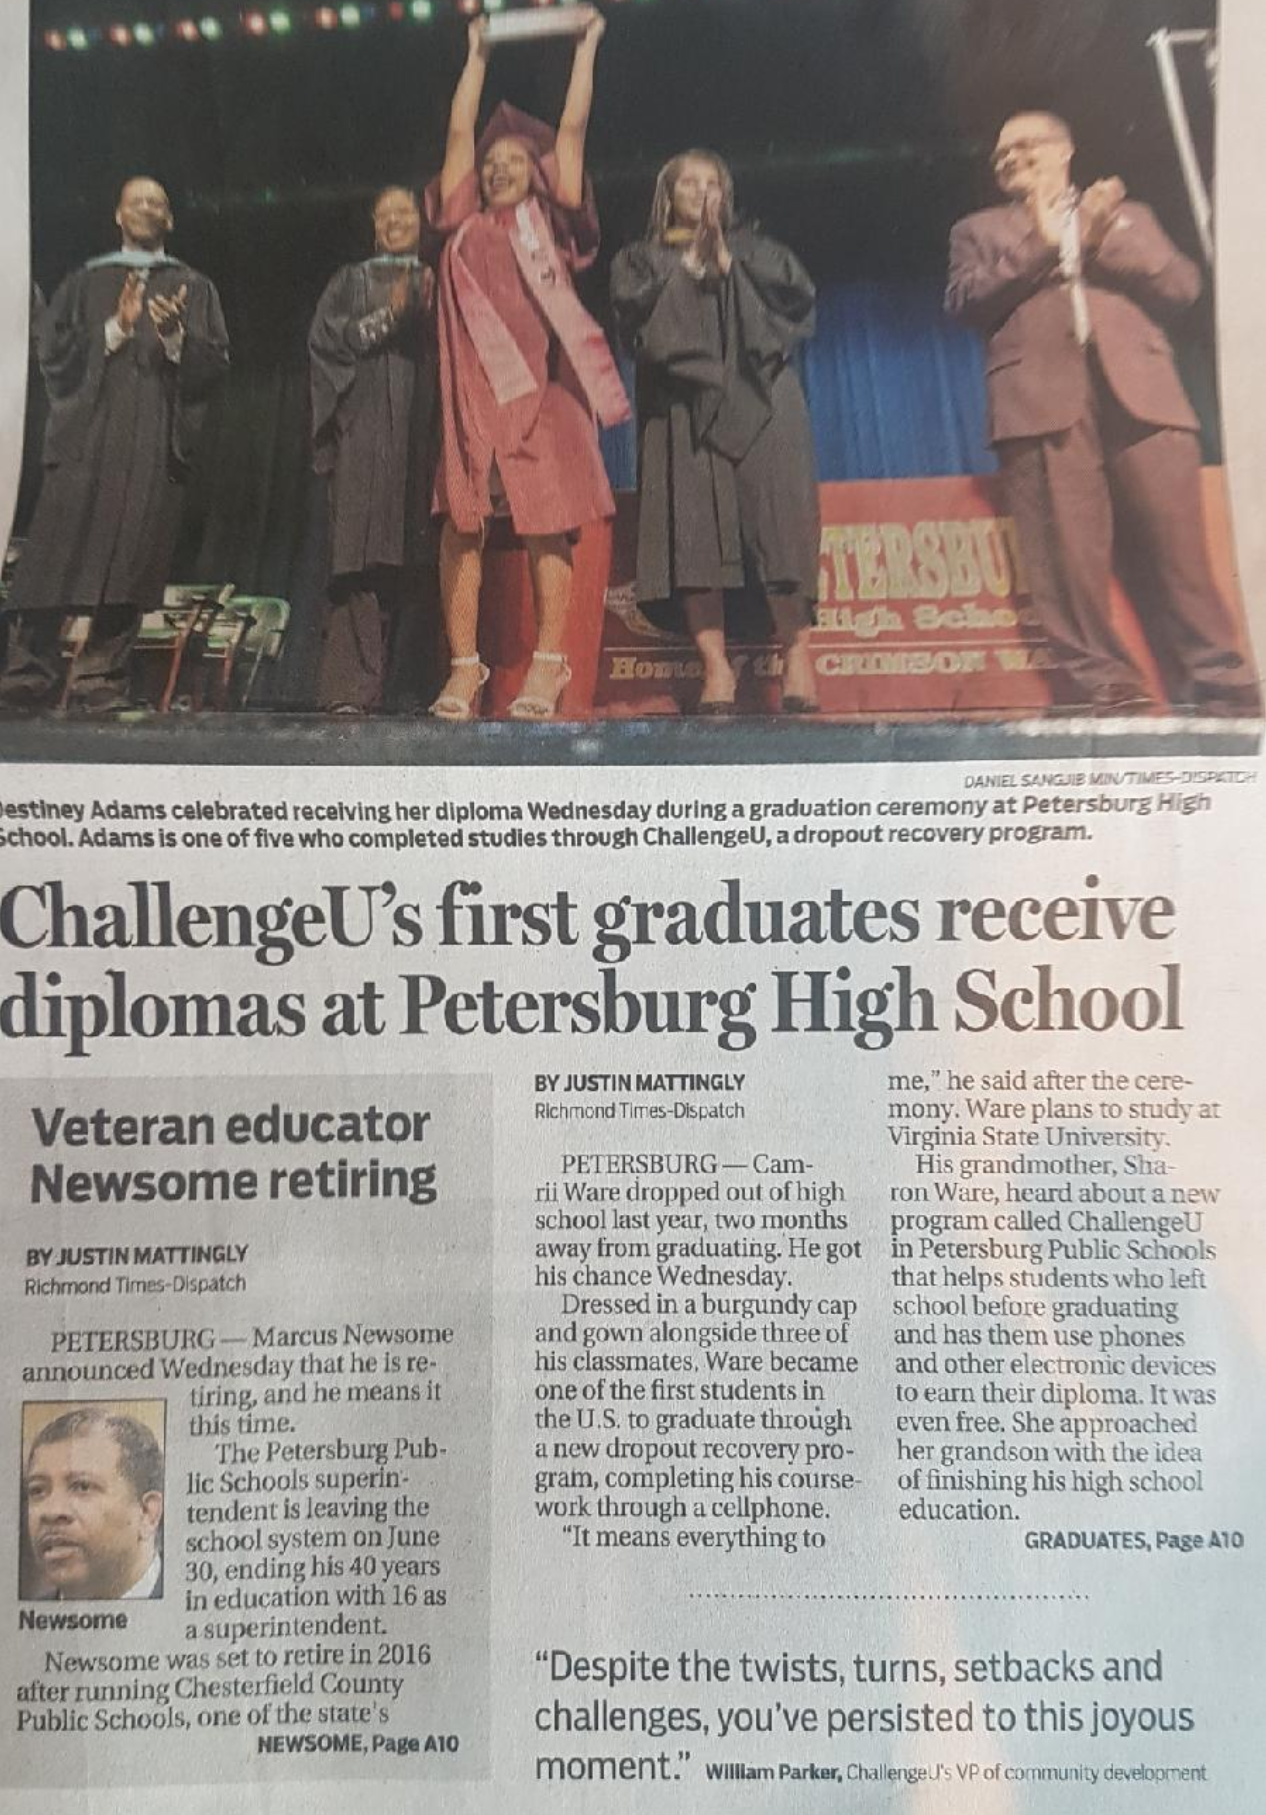 richmond news paper front page article